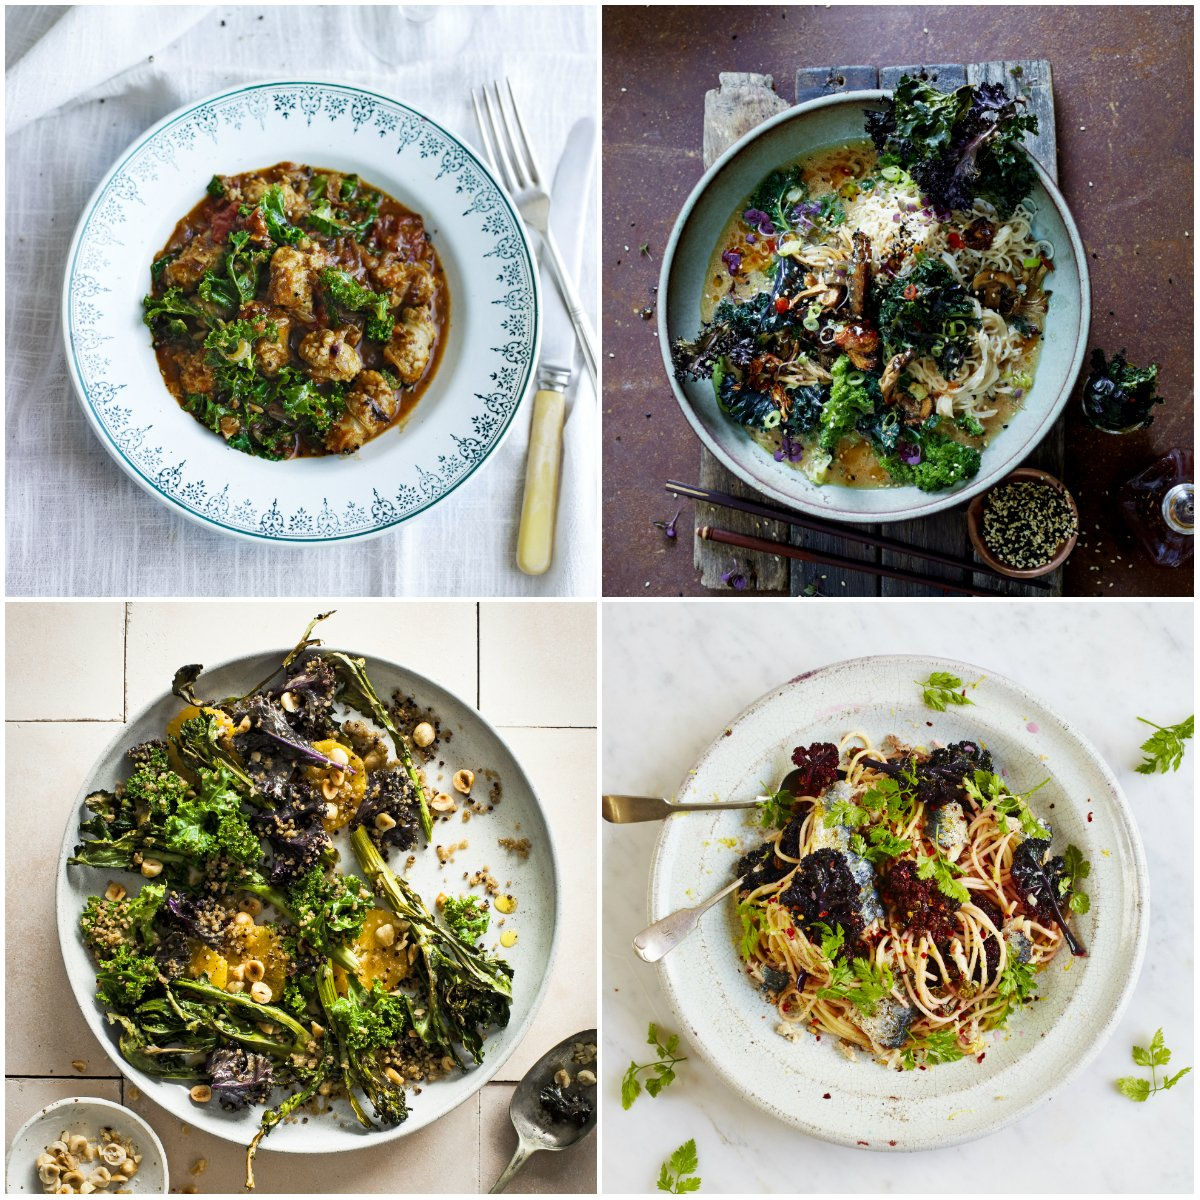 Kale's just come into season! ???? Here's 4 recipes to get started with... https://t.co/1b6eFVu1qu https://t.co/PytPODr7Gj